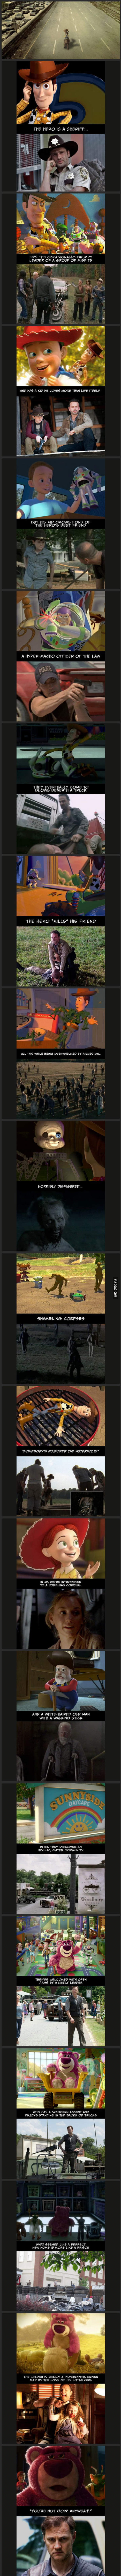 Toy Story vs Walking Dead. Mind blown!